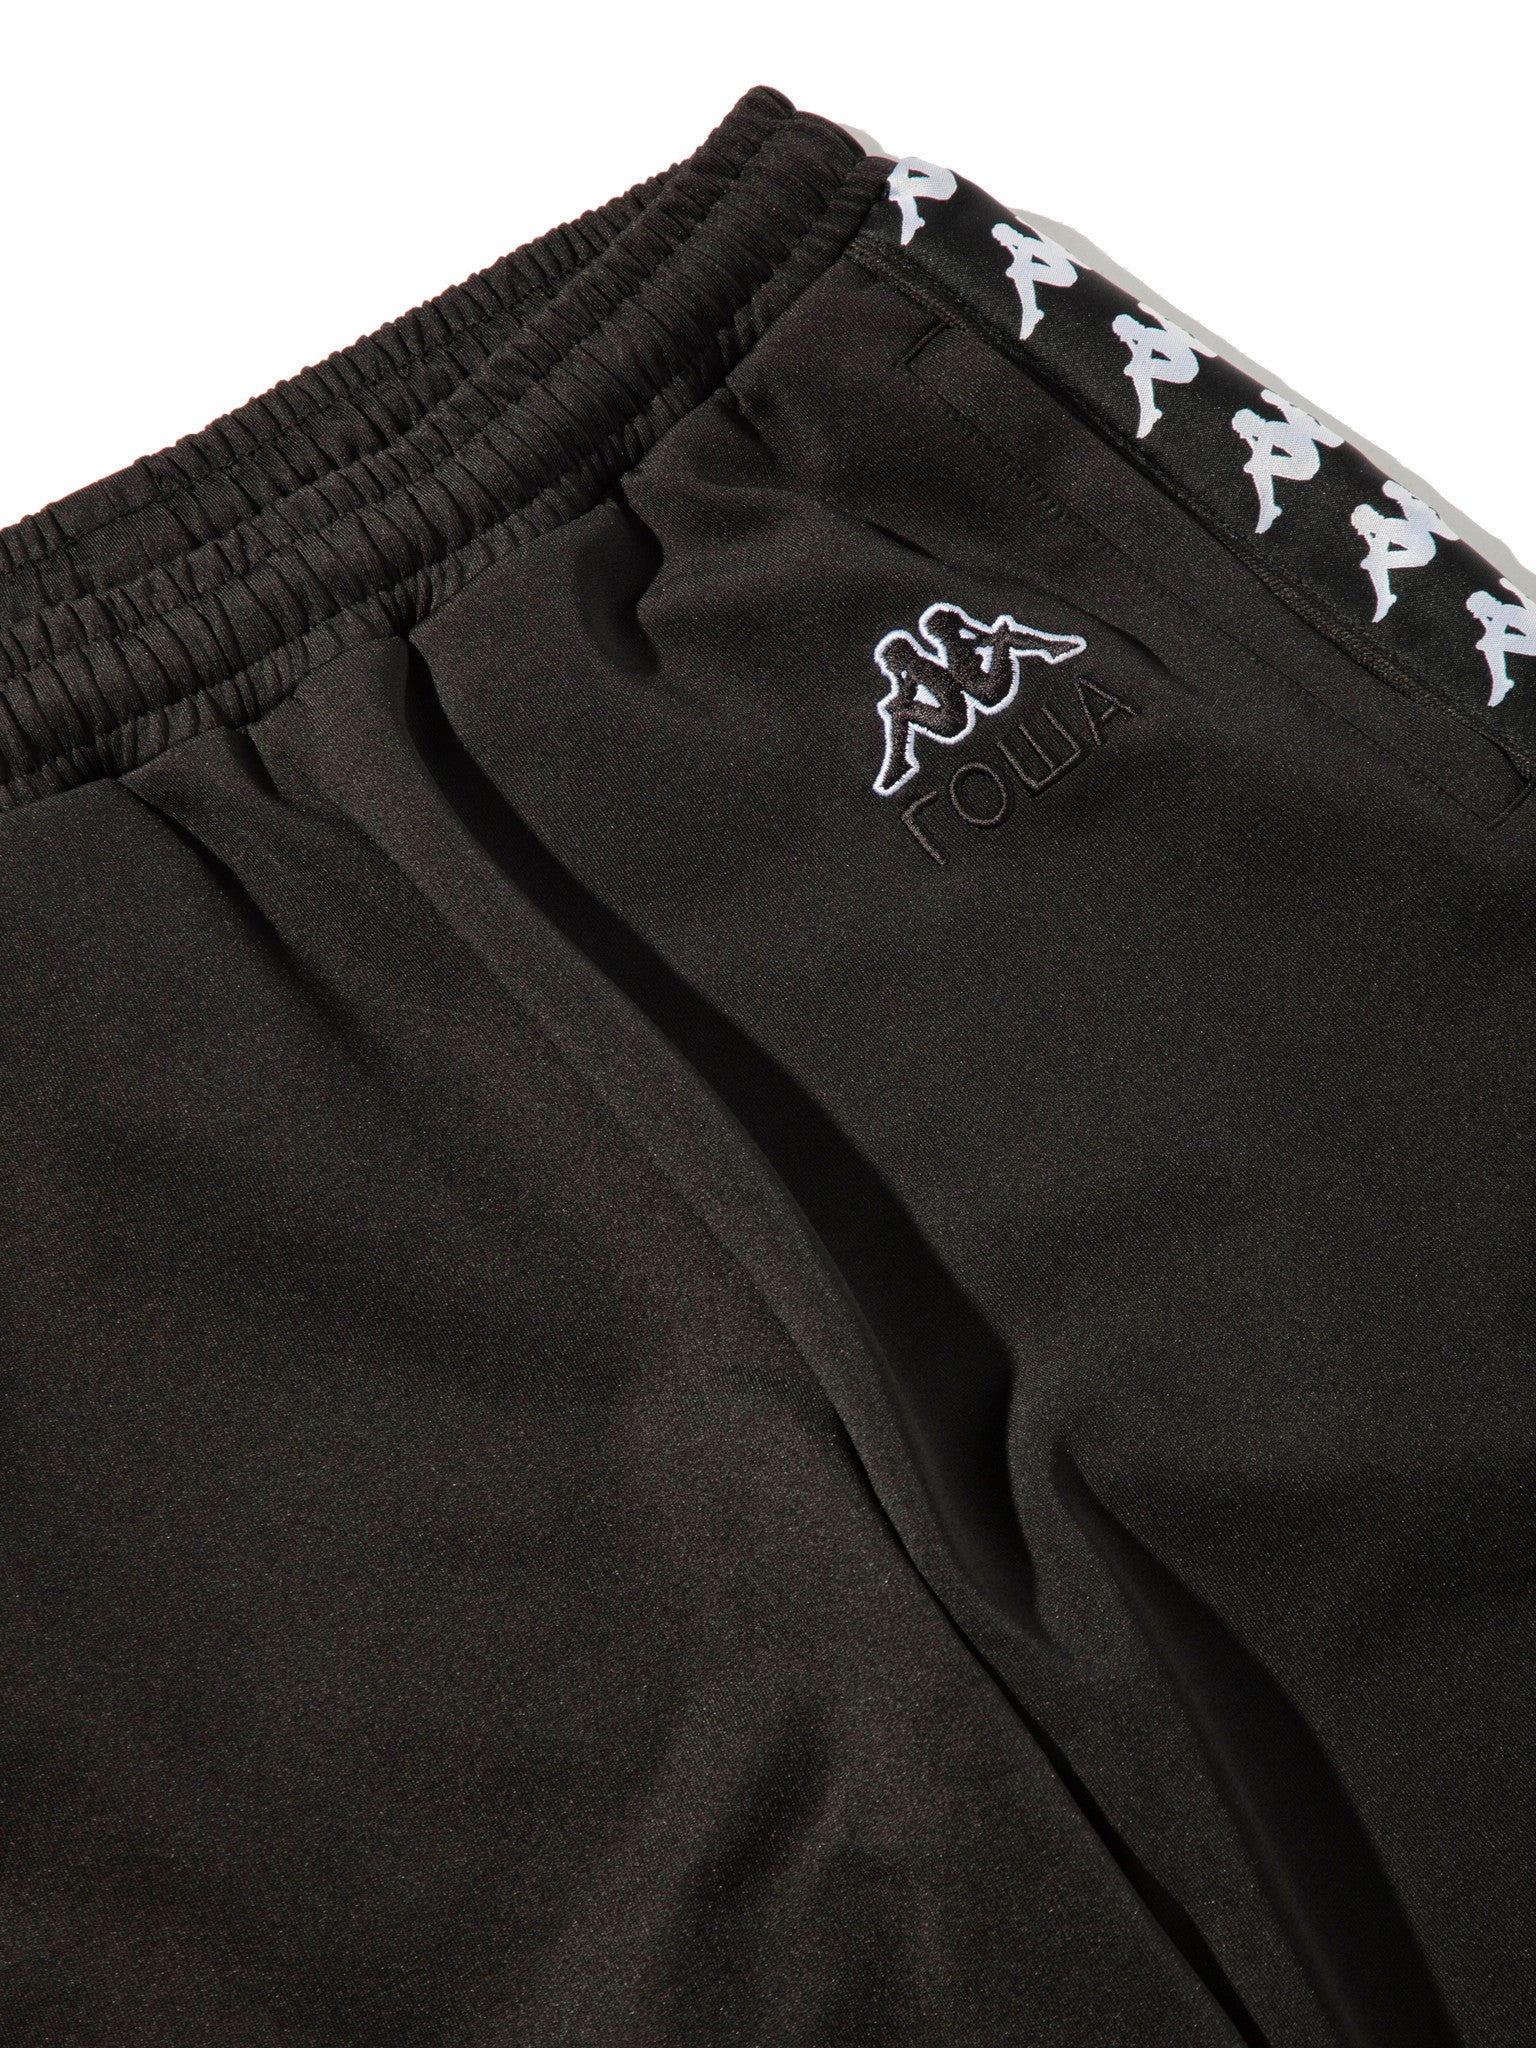 Kappa Sweat Pant